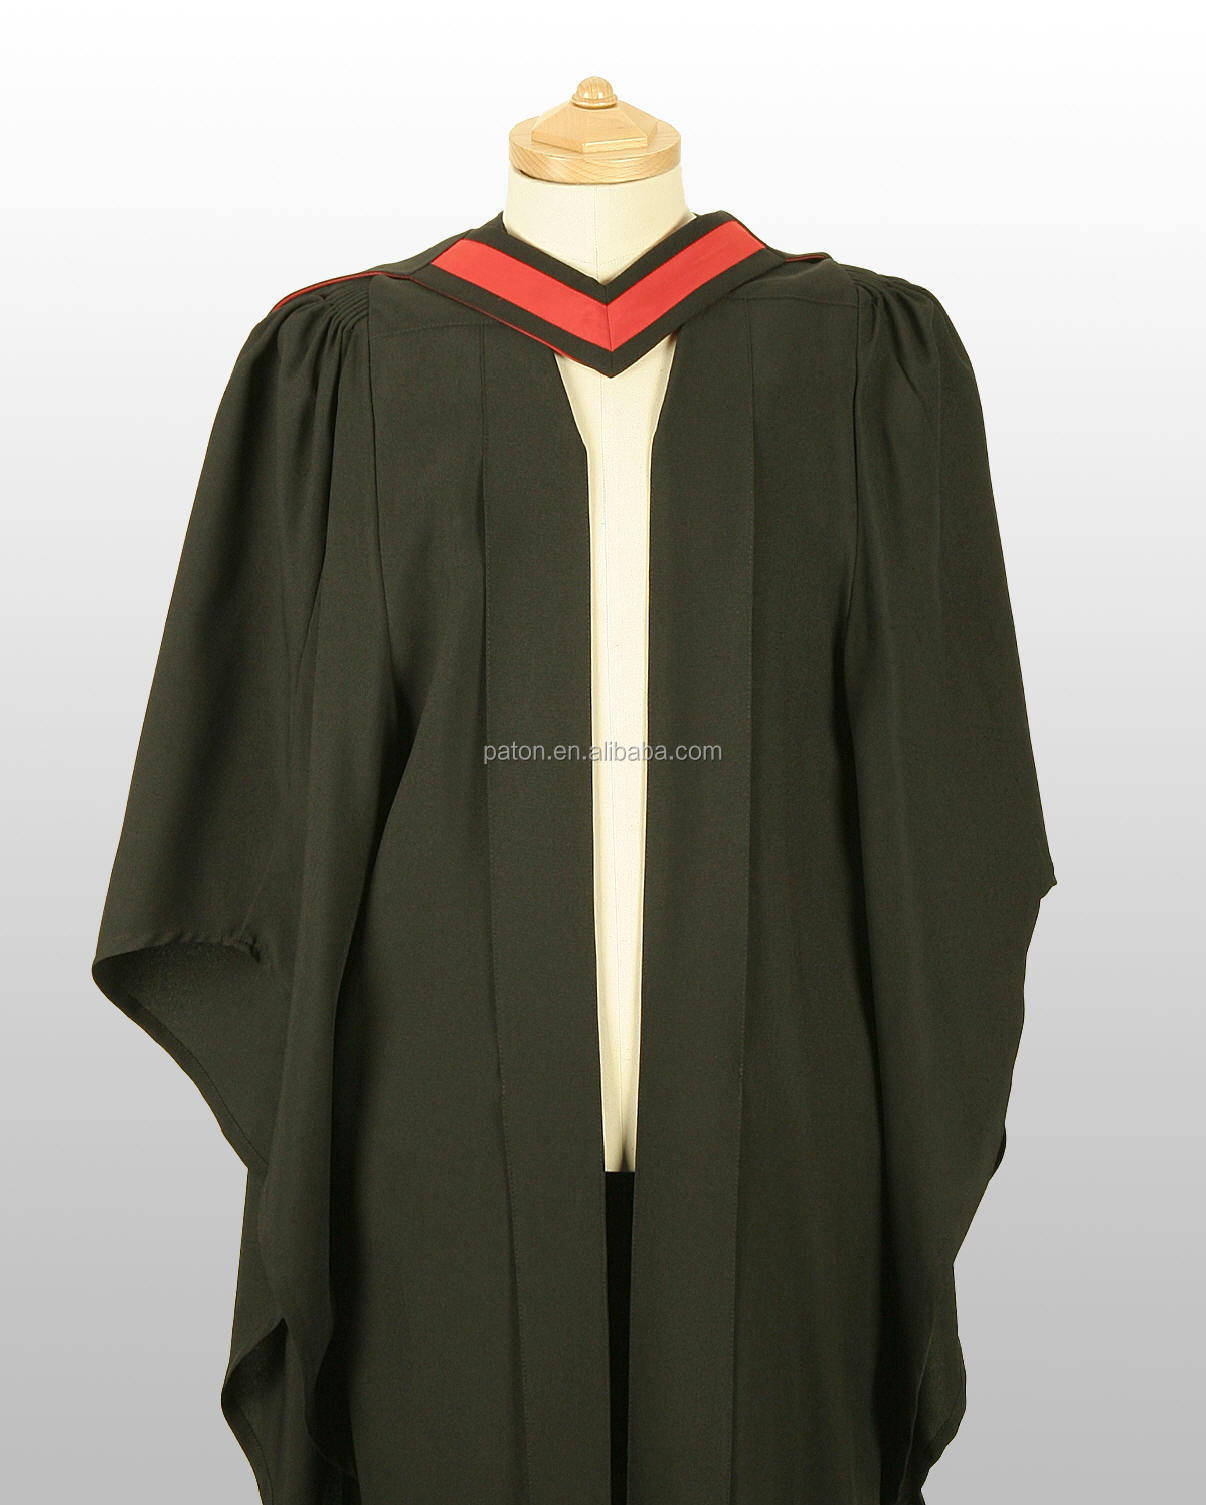 Cheap Price Fashionable Graduation Gowns For Academic Dress - Buy ...